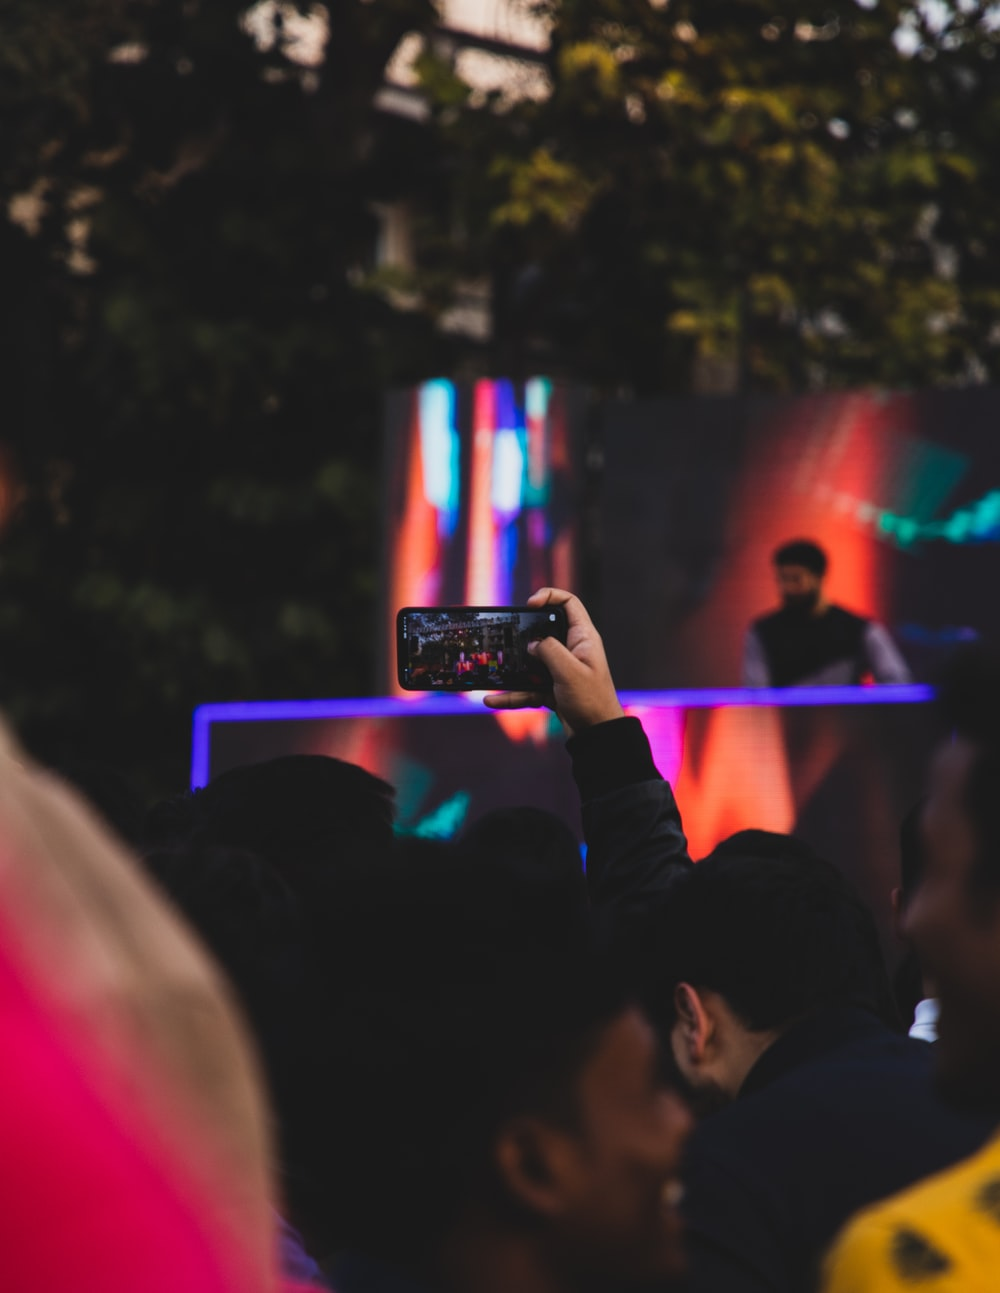 person holding smartphone taking photo of people in concert during night time